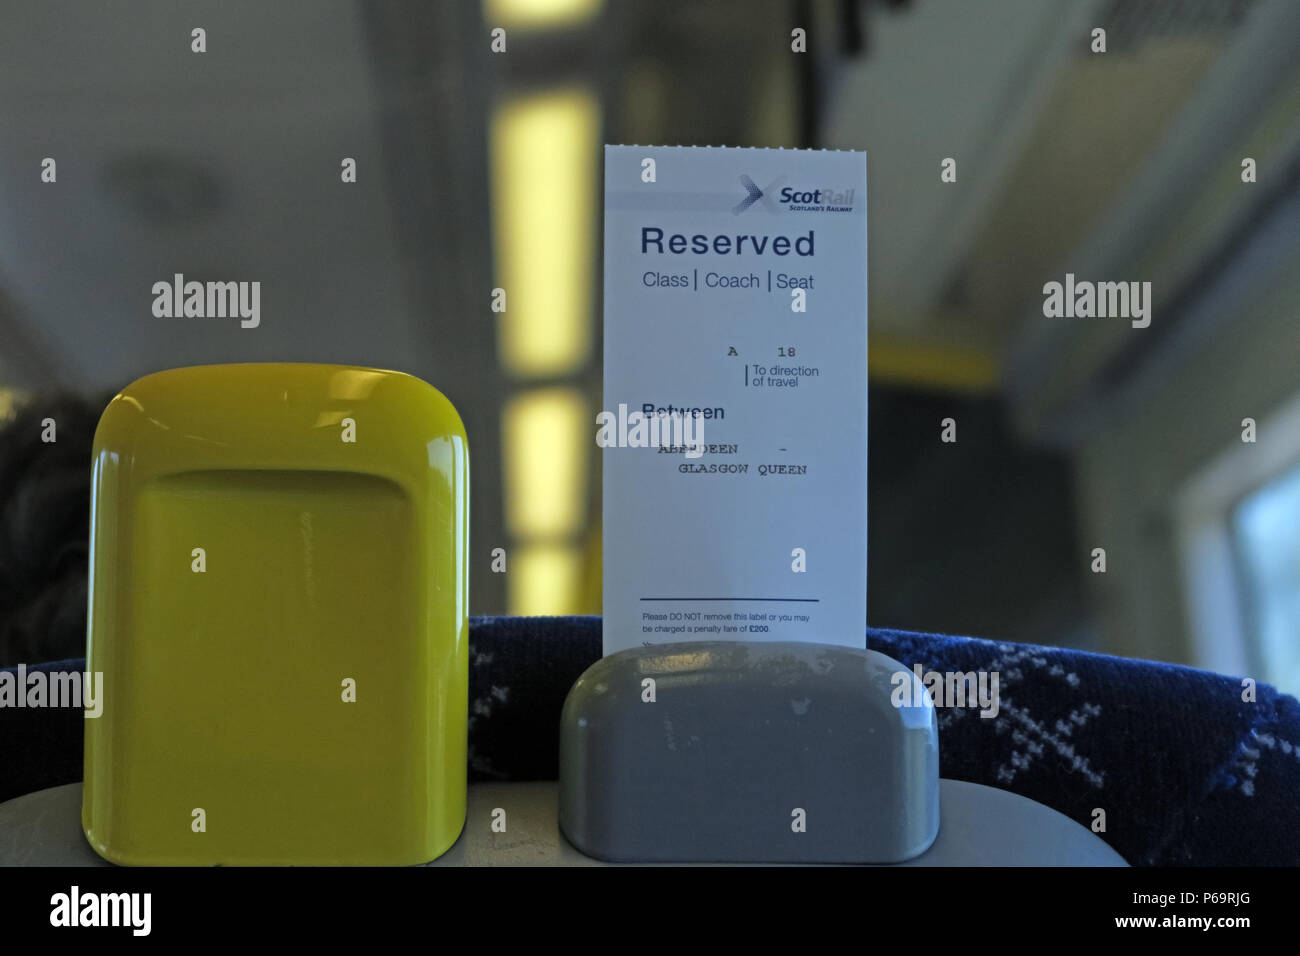 Scot Rail reserved journey from Aberdeen to Glasgow Queen Street, train from Perth, Scotland, UK - Stock Image